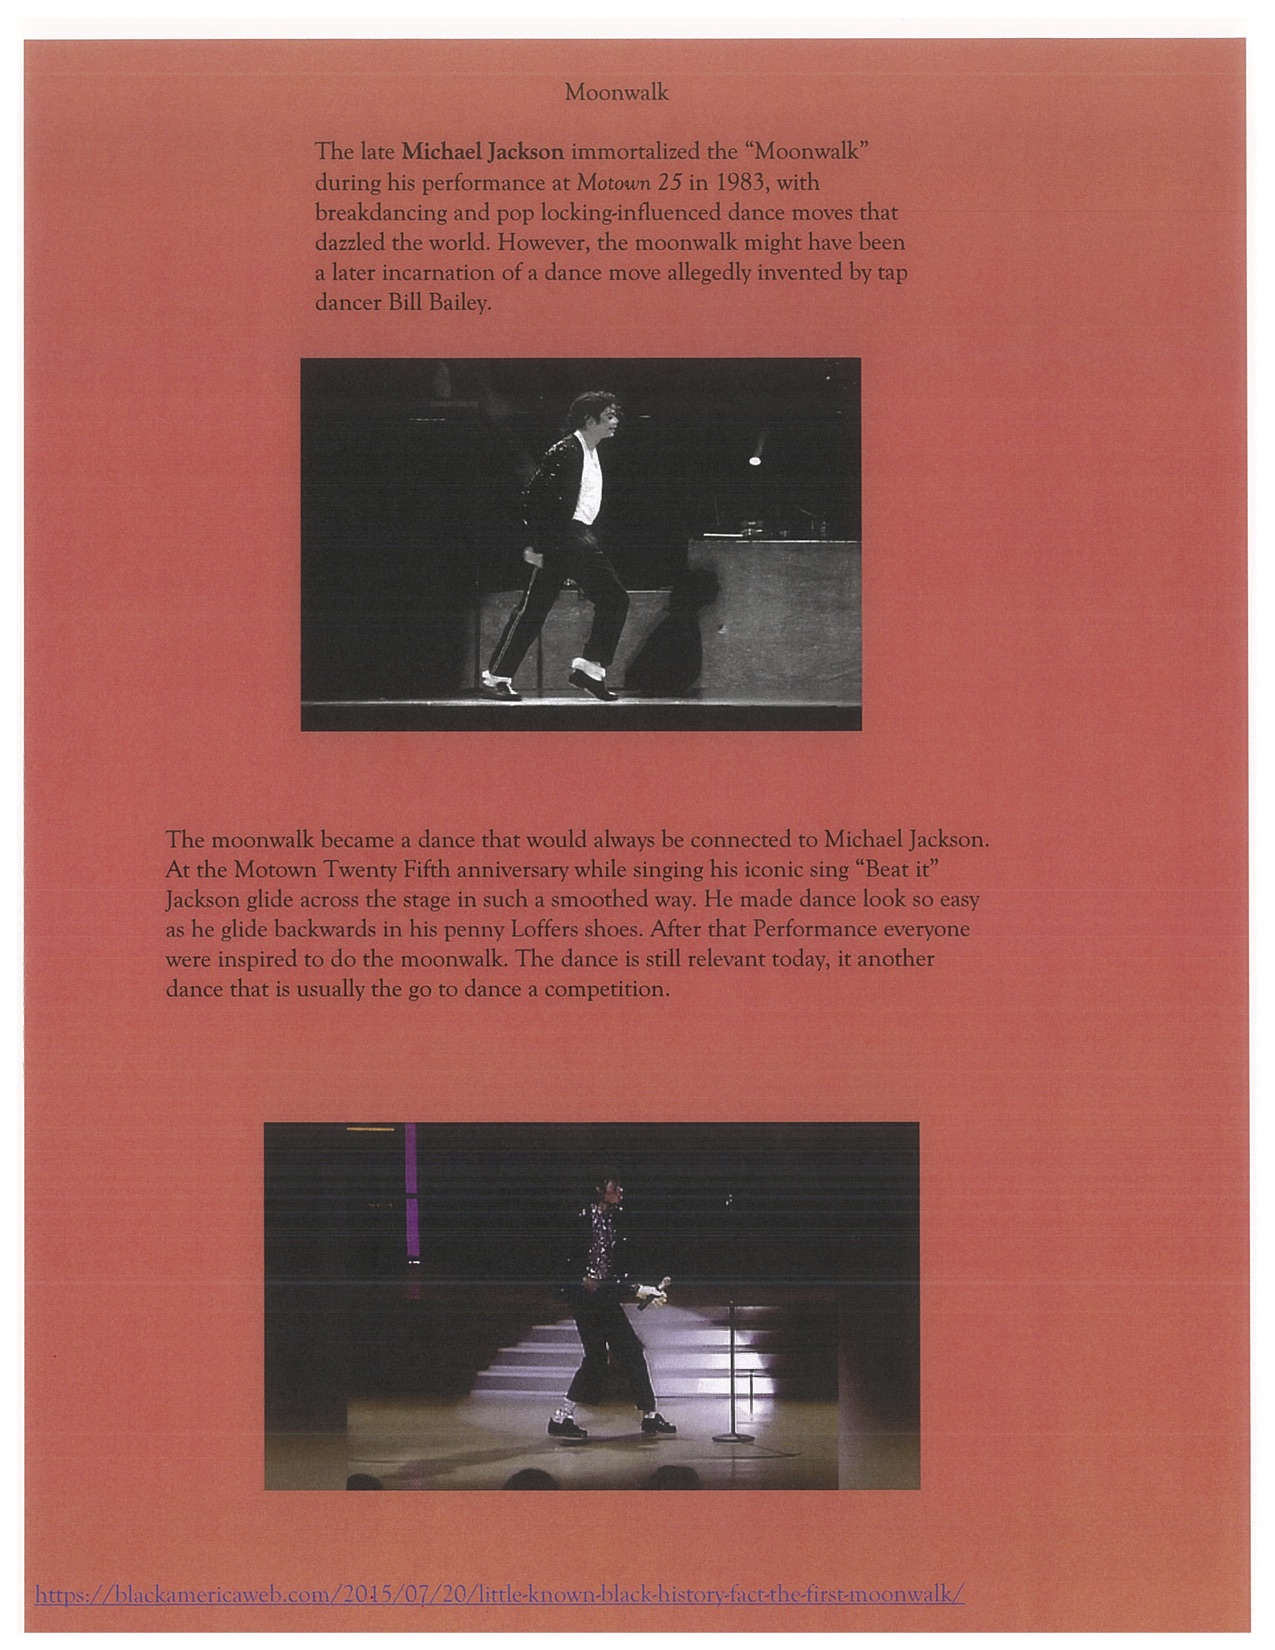 Page 11. The Moonwalk displayed at Motown 25th Anniversary.